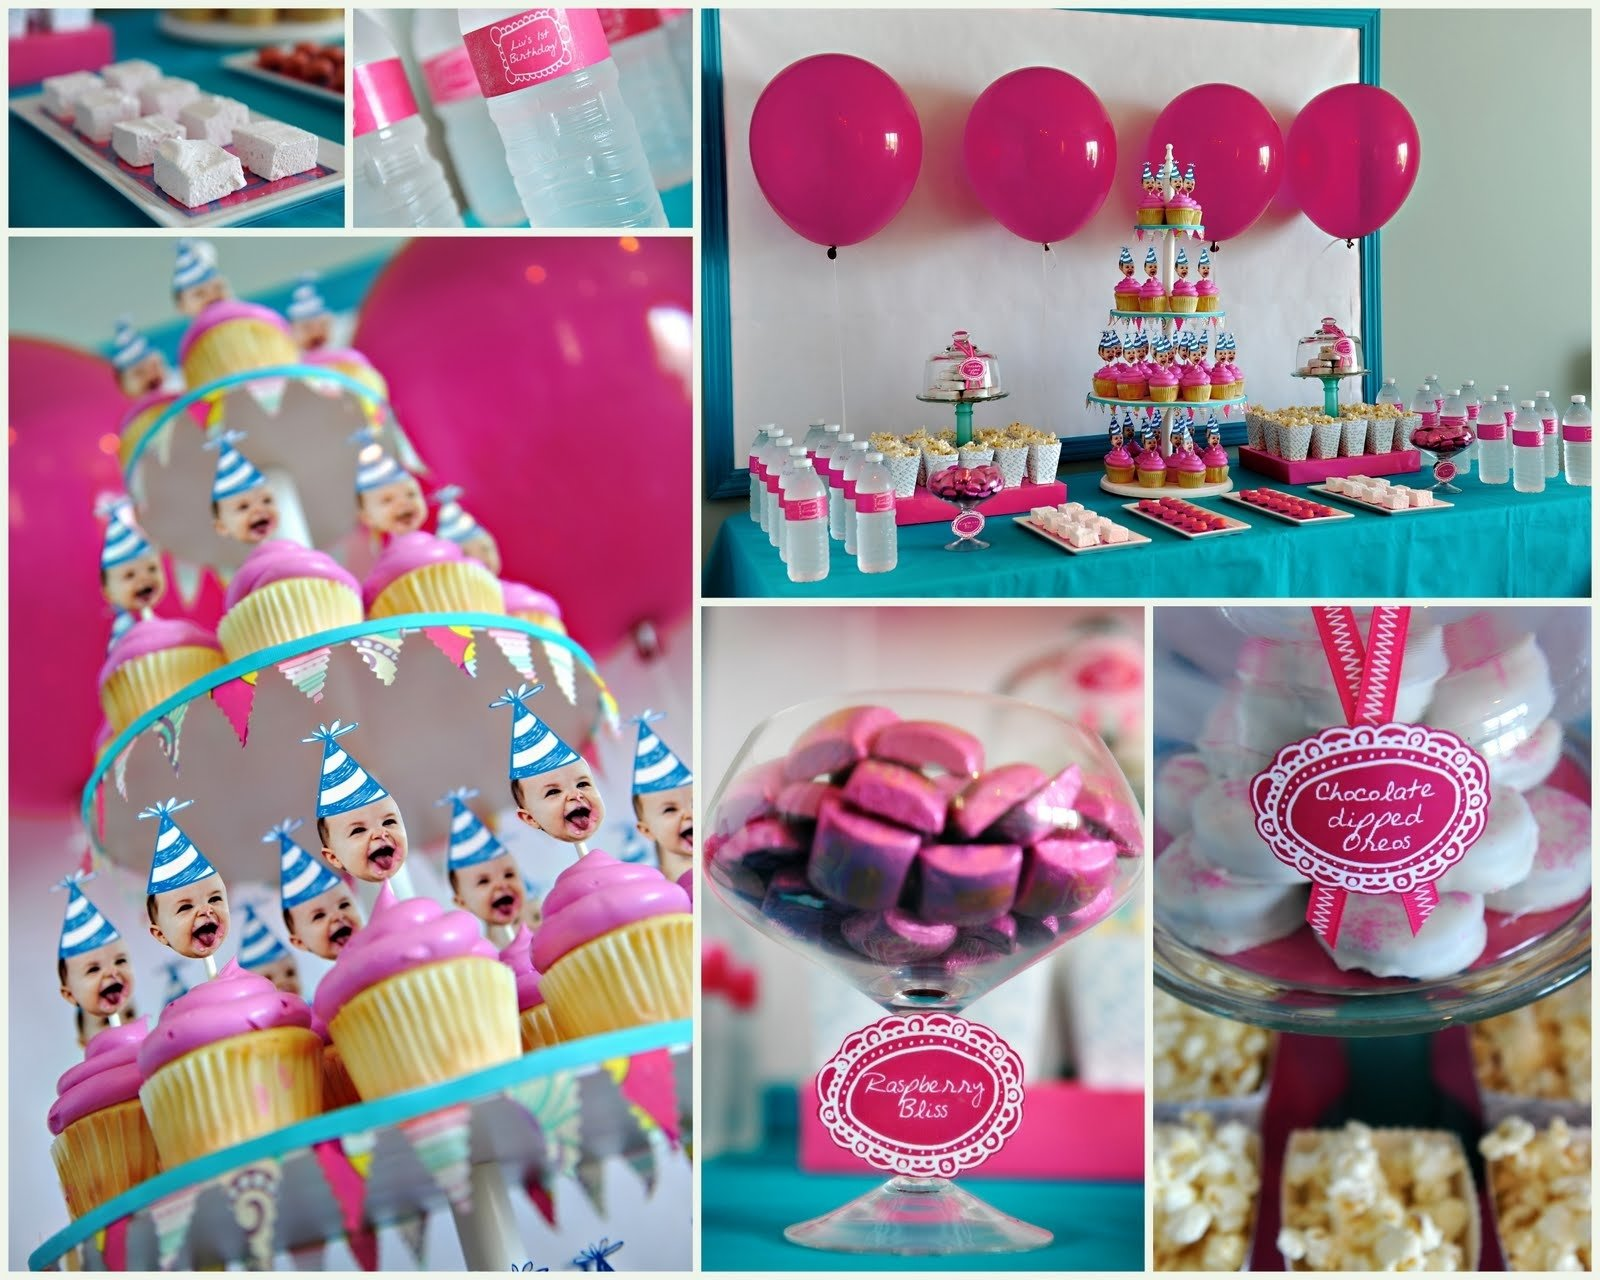 10 Fabulous Baby First Birthday Party Ideas birthday party ideas with balloon and cupcake lets party 8 2020